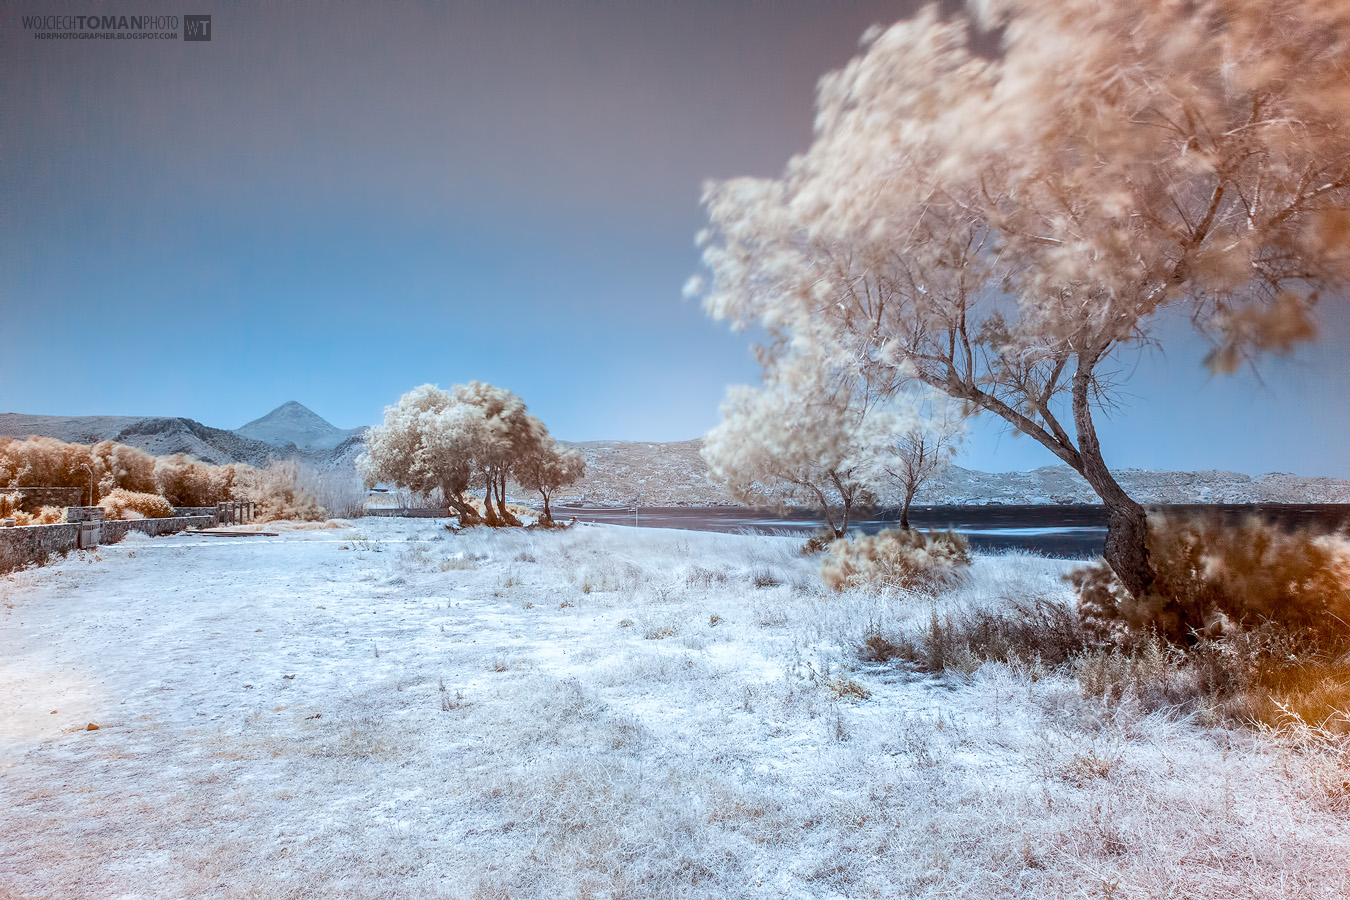 Infrared photo from Crete